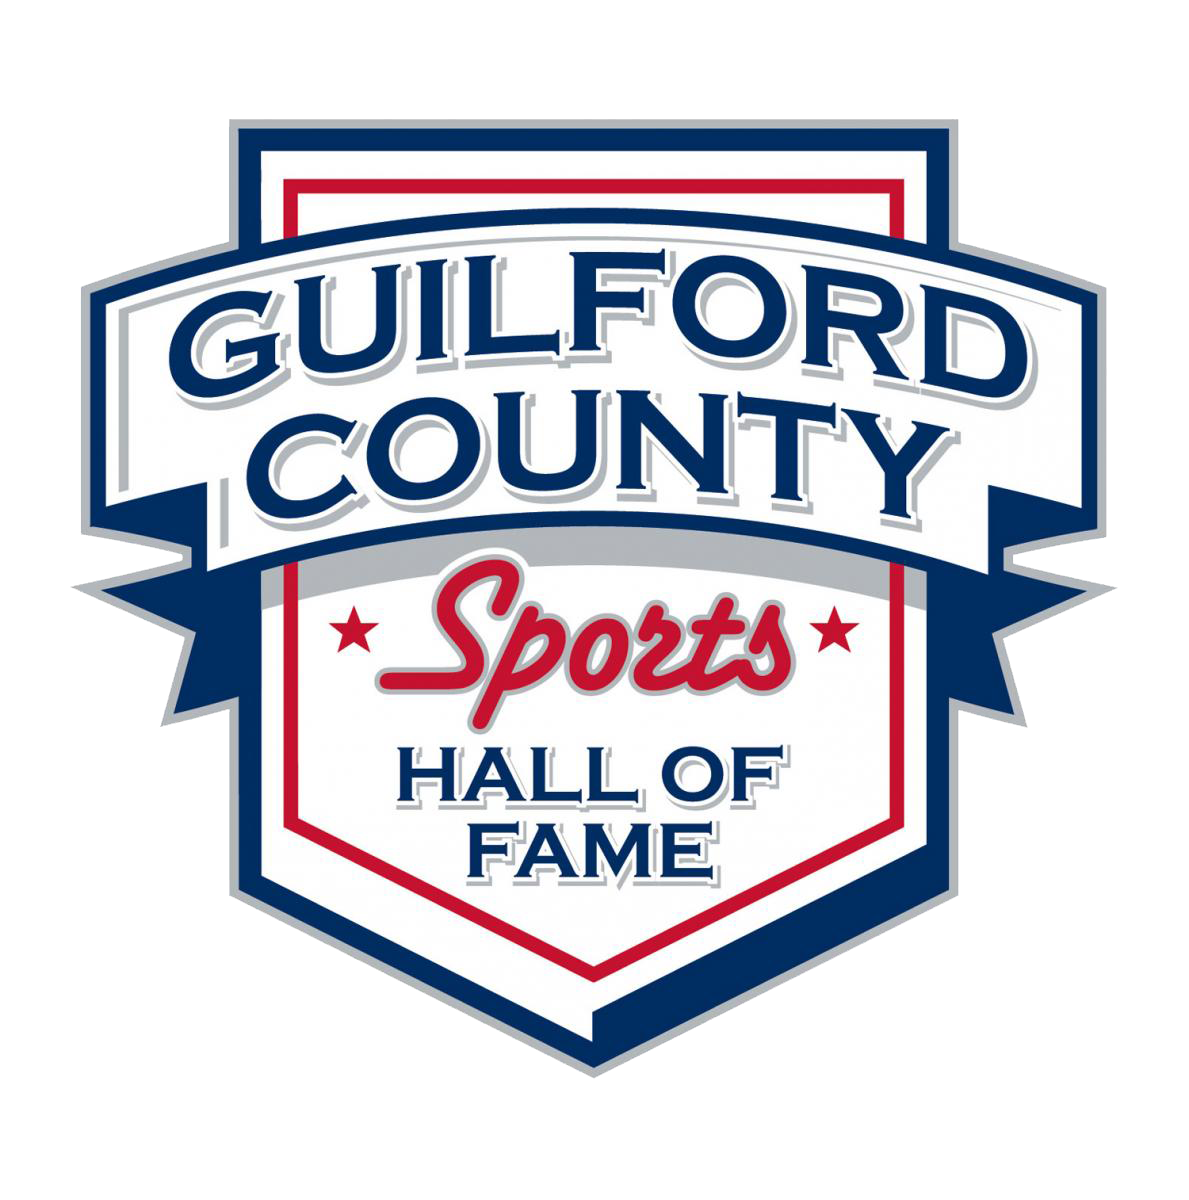 guilford county sports hall of fame logo 092215 (copy) (copy)